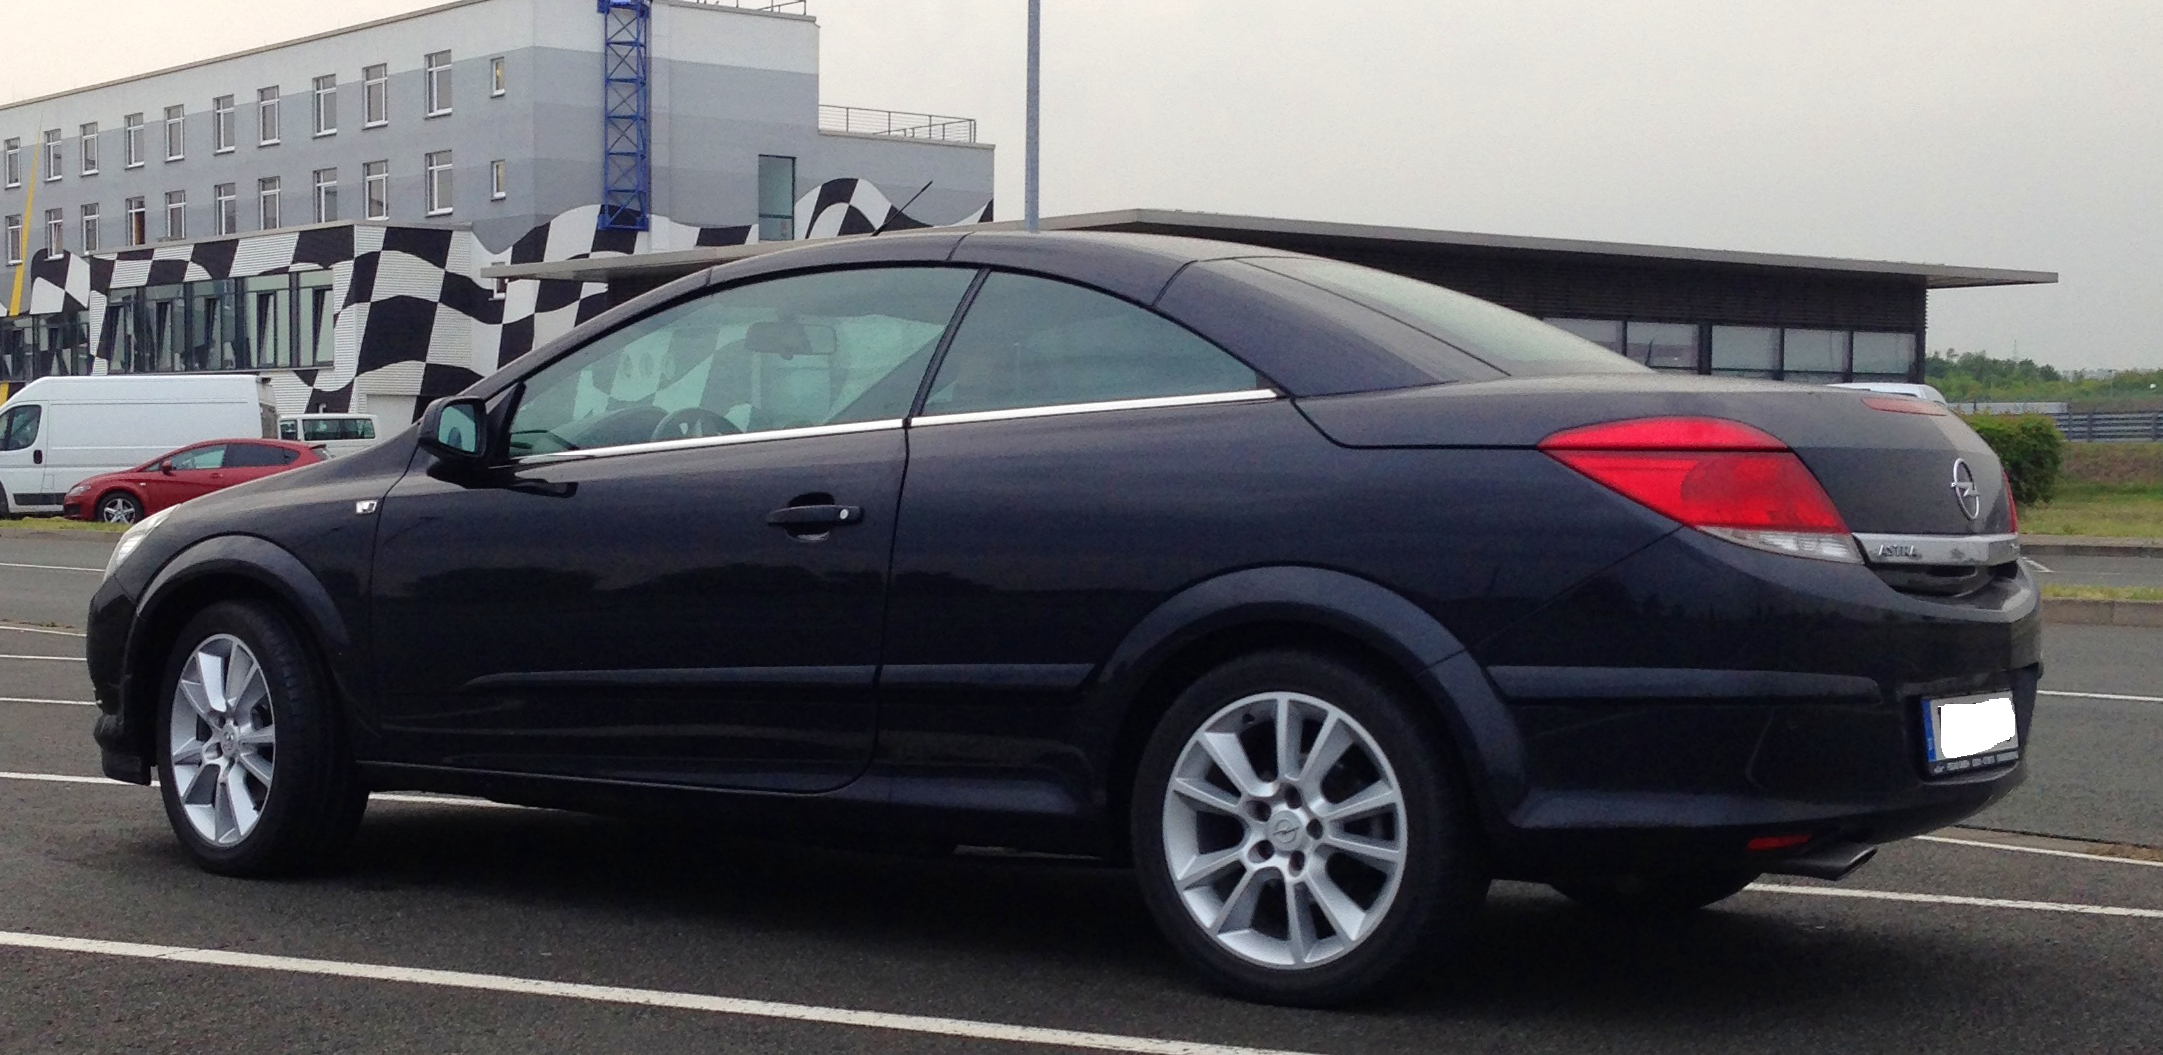 Opel Astra H Twintop Cabrio mit Tempomat